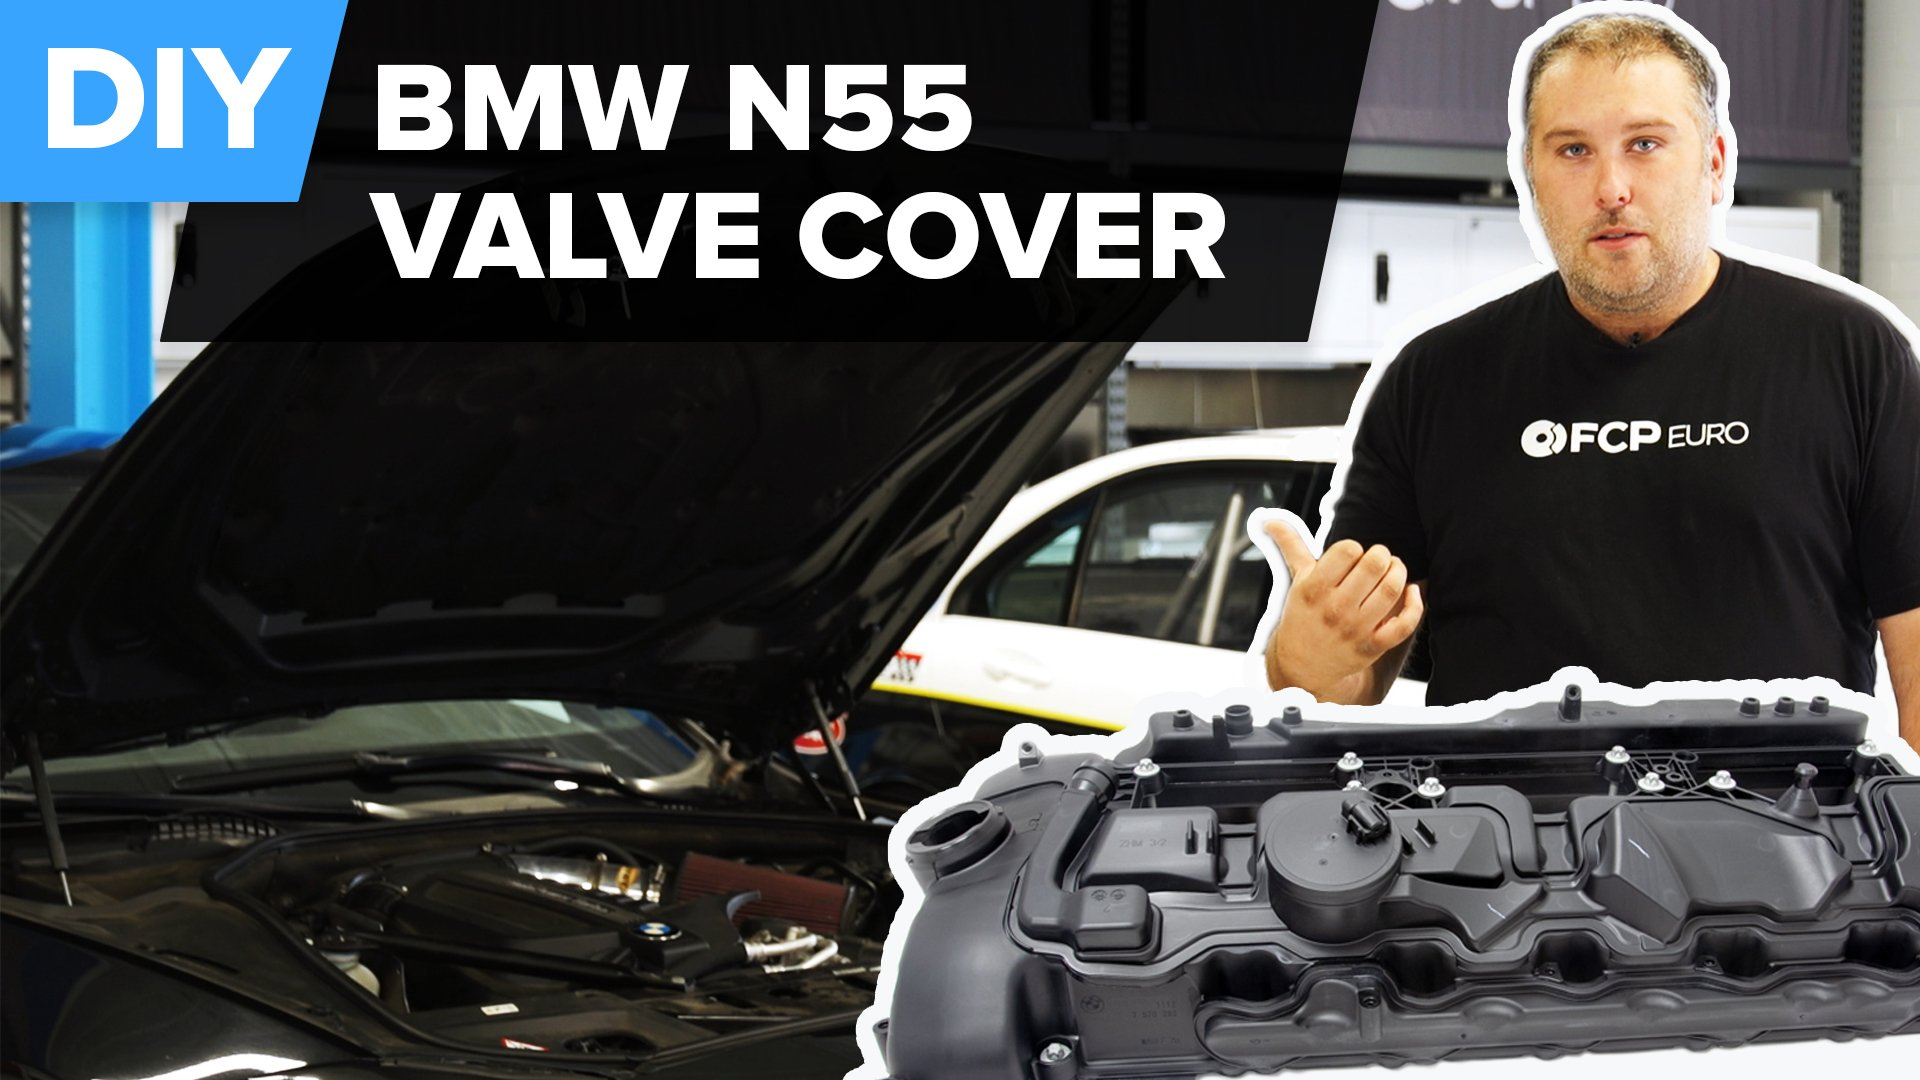 How To Replace The Valve Cover On A BMW N55 Engine (X5, X3, 335i, & More)